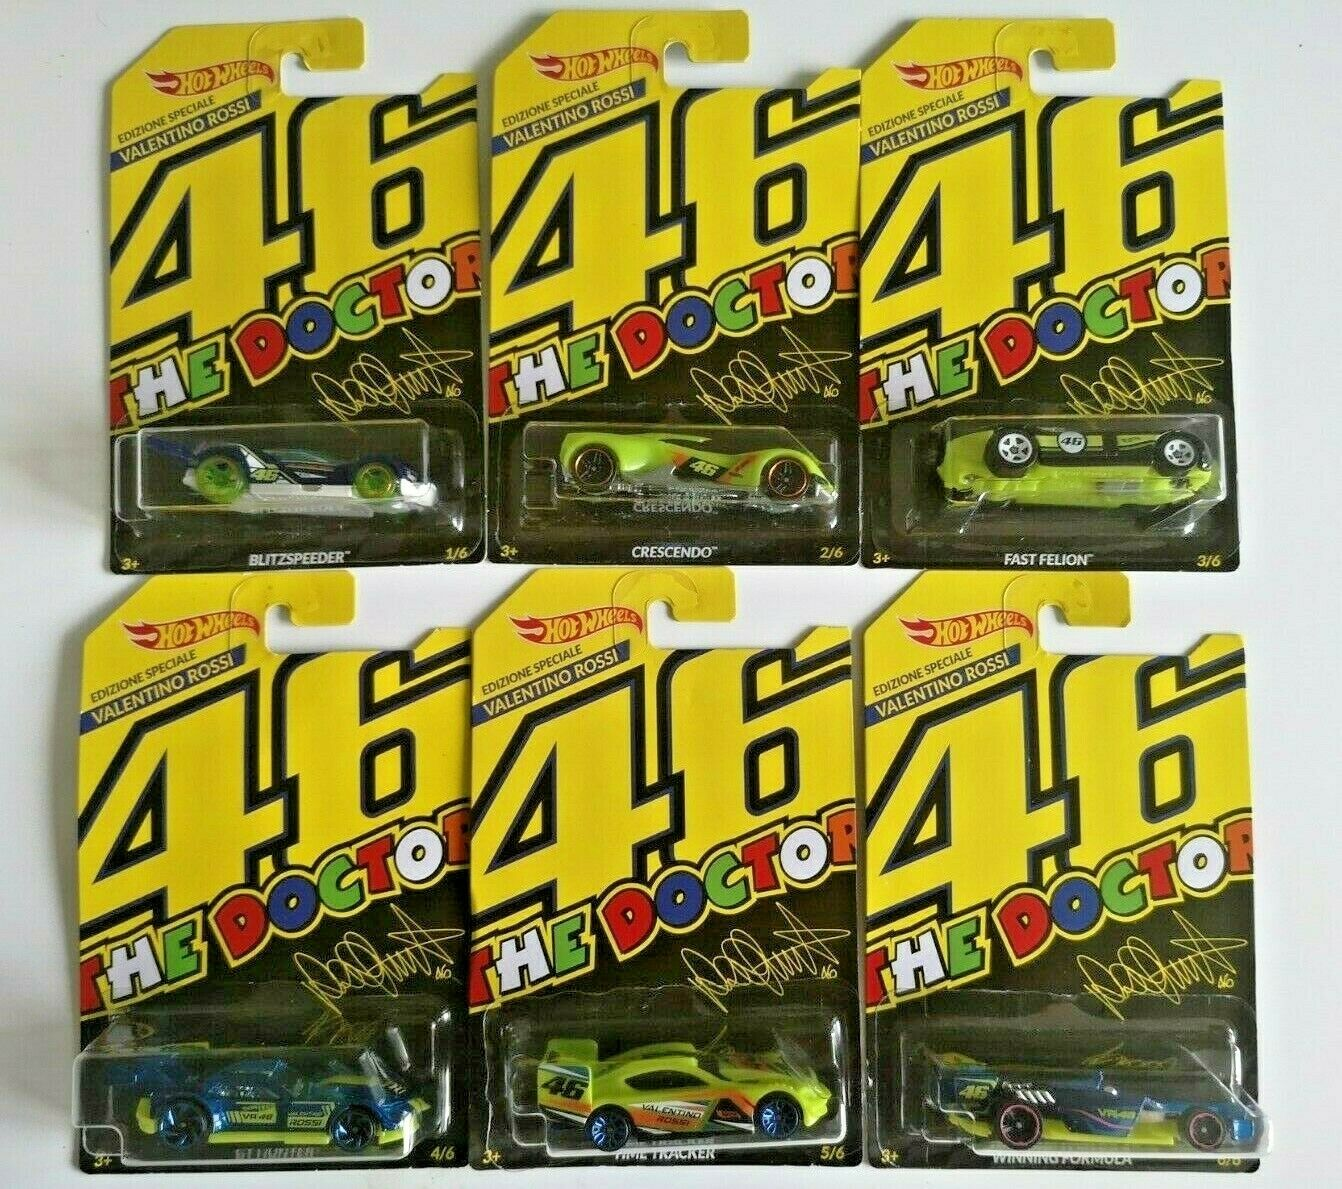 HOT WHEELS 2018 VALENTINO ROSSI SET LIMITED EDITION for ITALY Doctor 46 full set